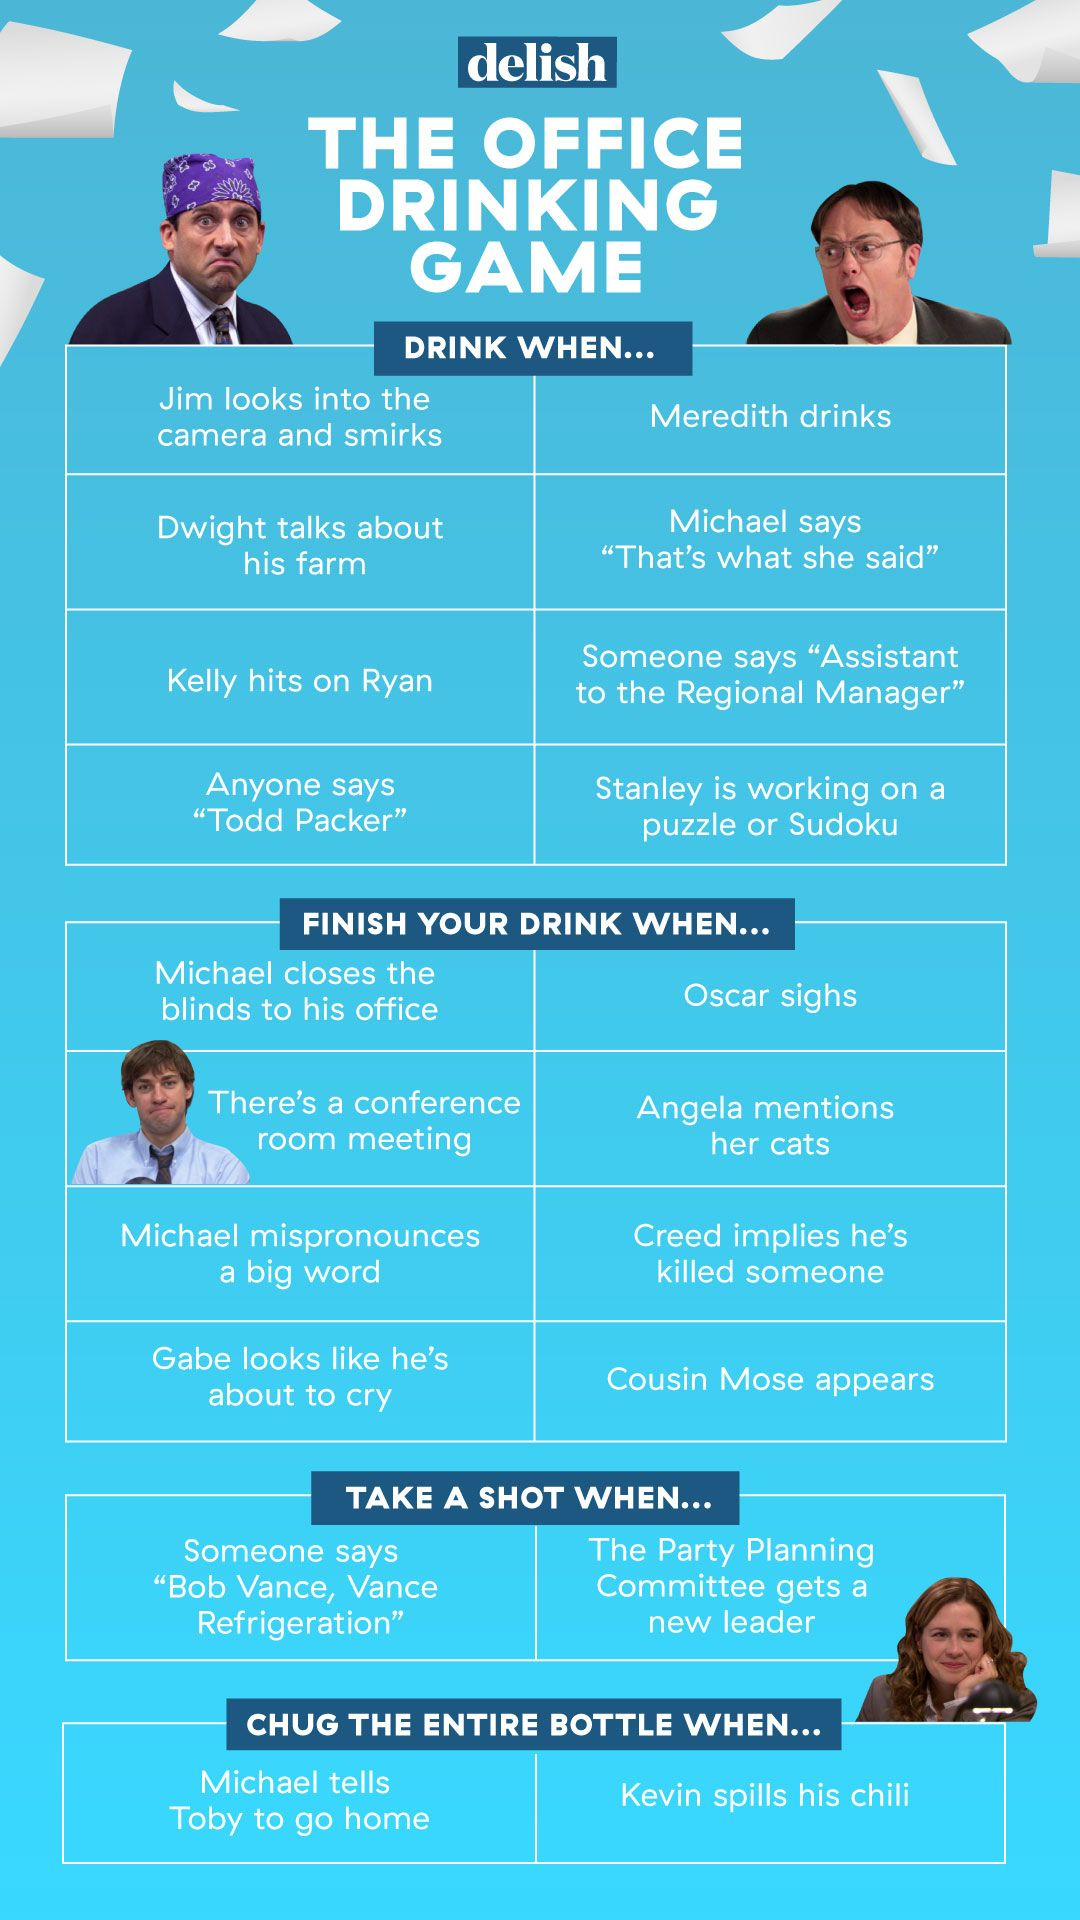 The Ultimate 'The Office' Drinking Game to Play With Friends